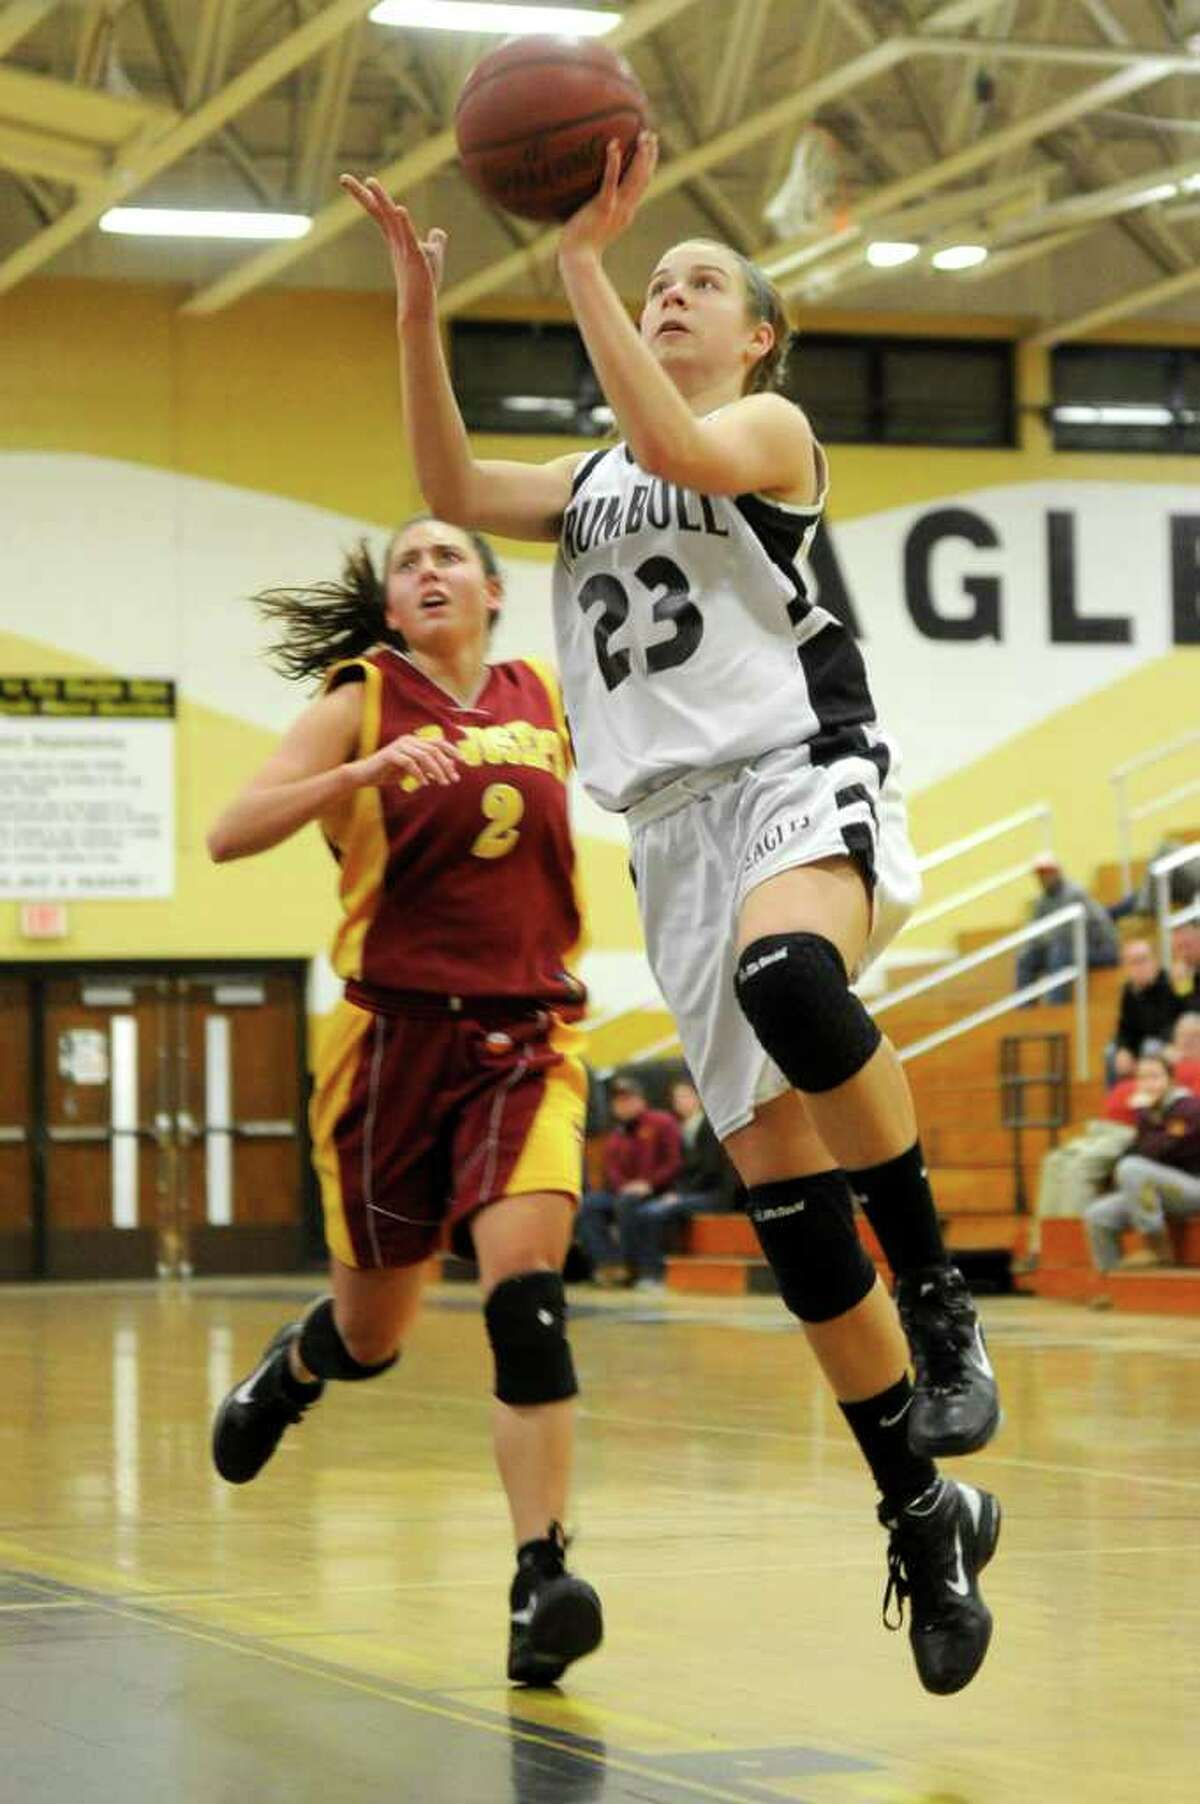 Trumbull's Victoria Pfohl takes a shot against St. Joseph during Tuesday's game at Trumbull High School on January 25, 2011.